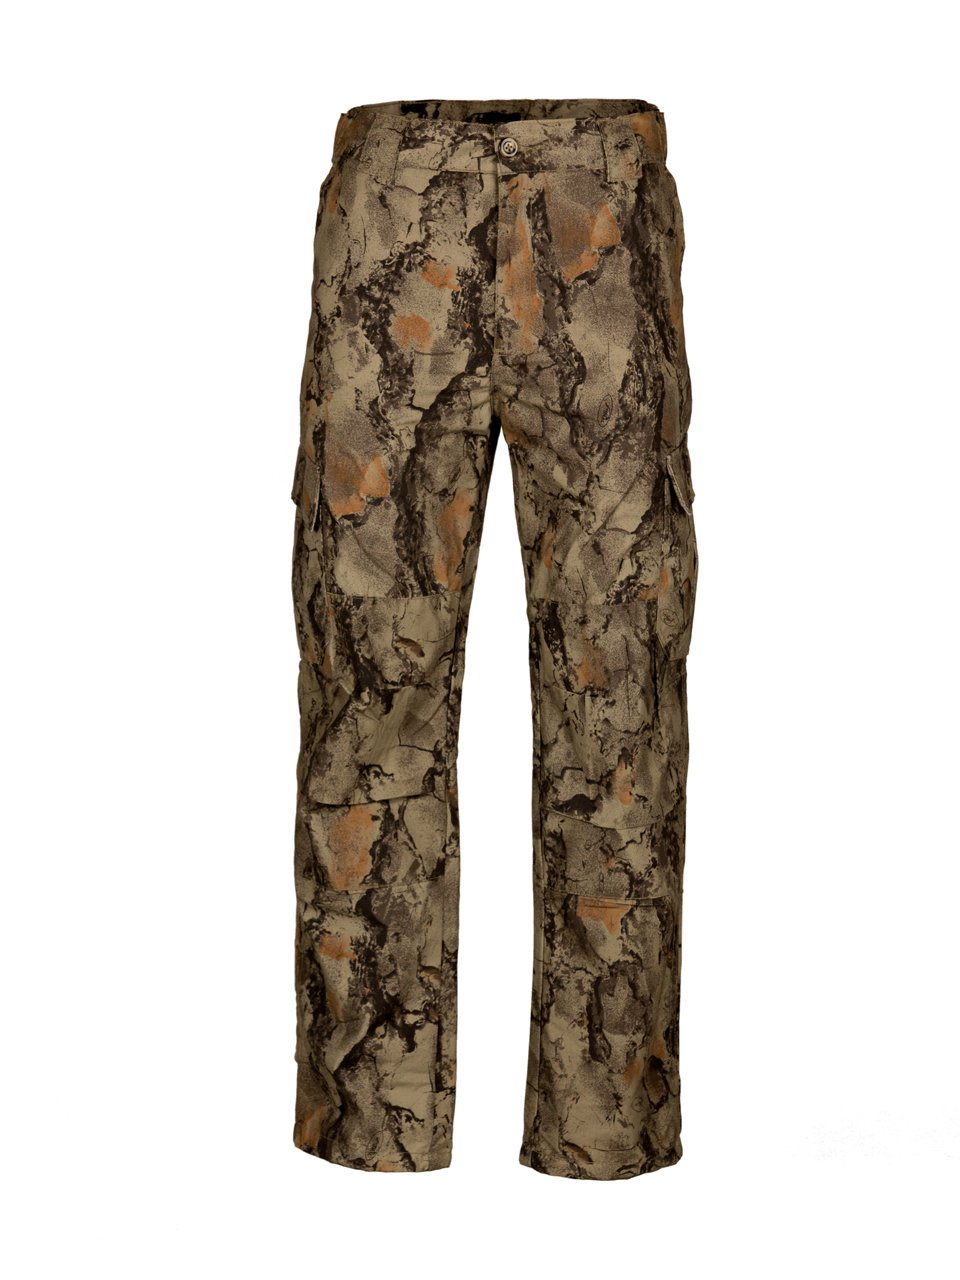 Natural Gear Fatigue 6-Pocket Camouflage Hunting Pants - Long (Men's XL) by Natural Gear